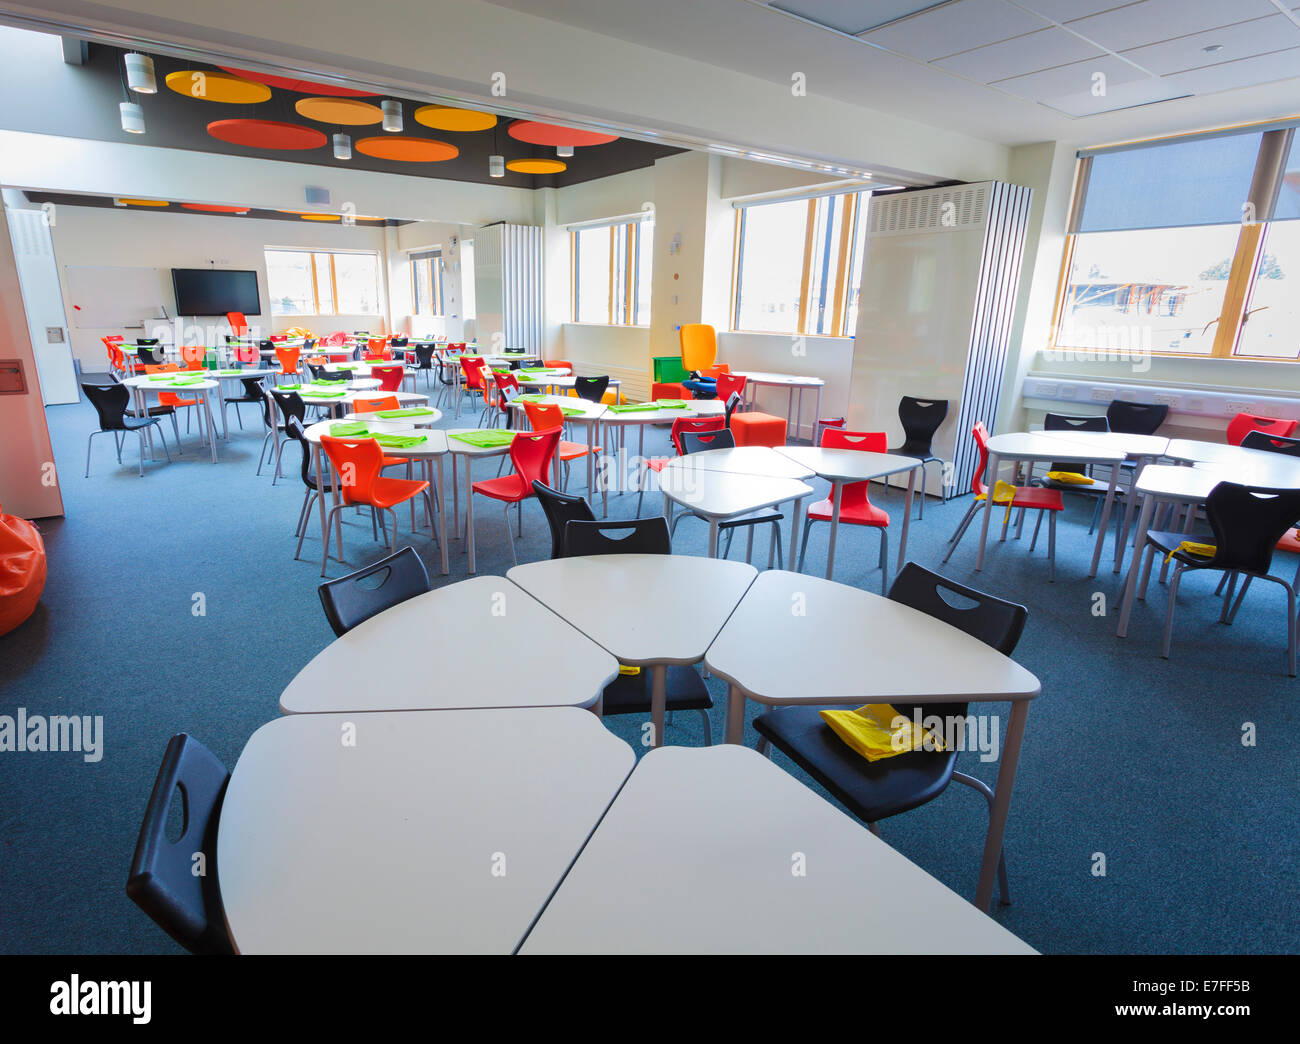 Modern High School Classroom Designs ~ Unoccupied modern school classroom with desks in a circle